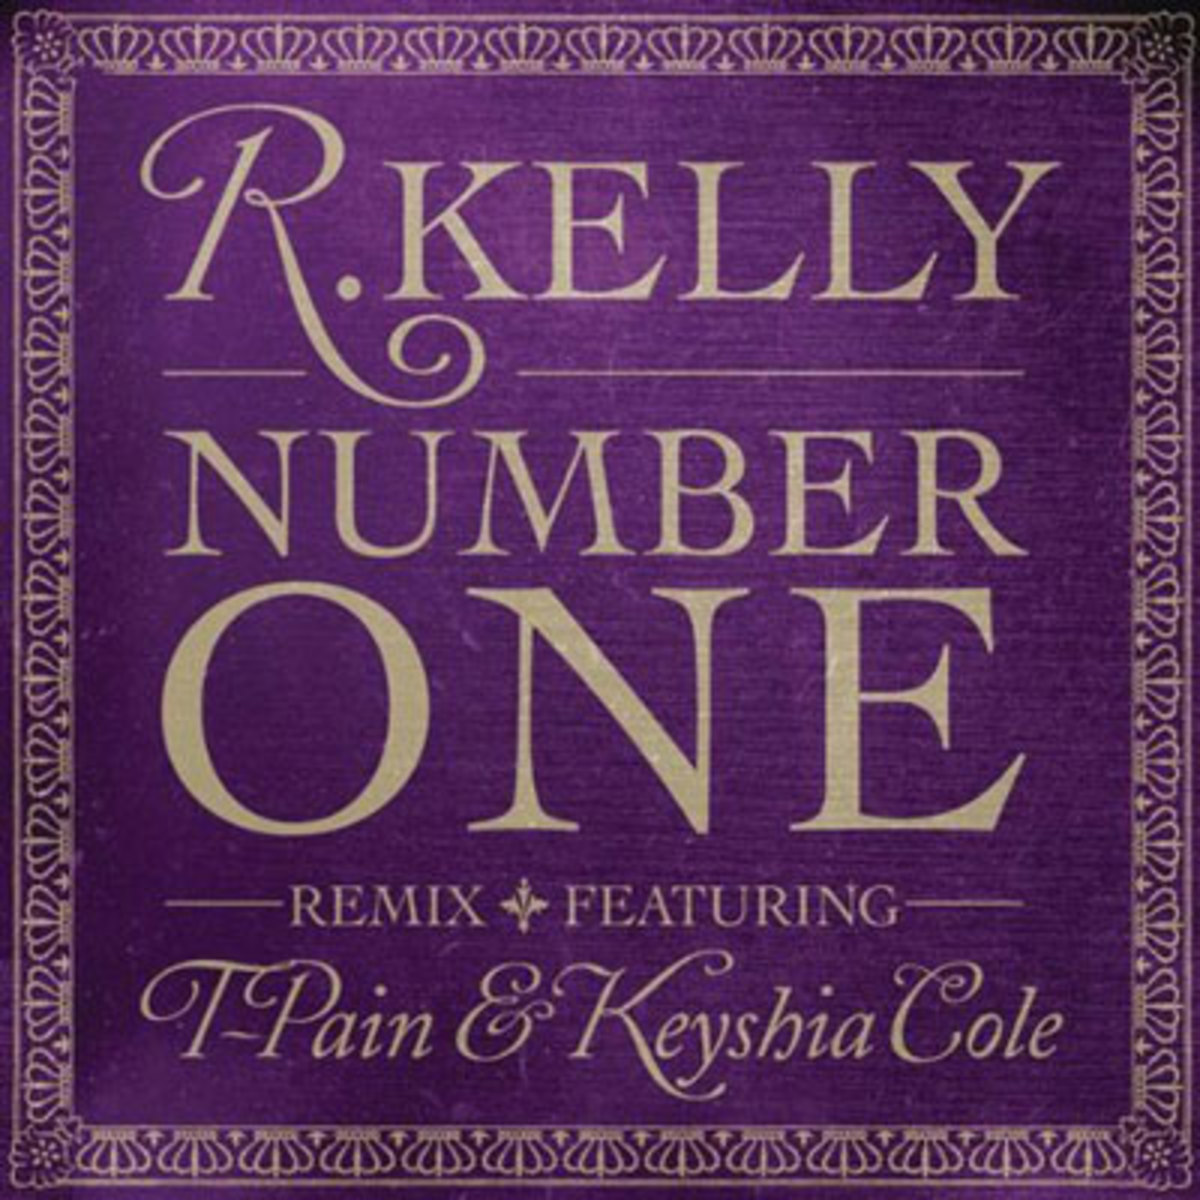 rkelly-numberonermx.jpg